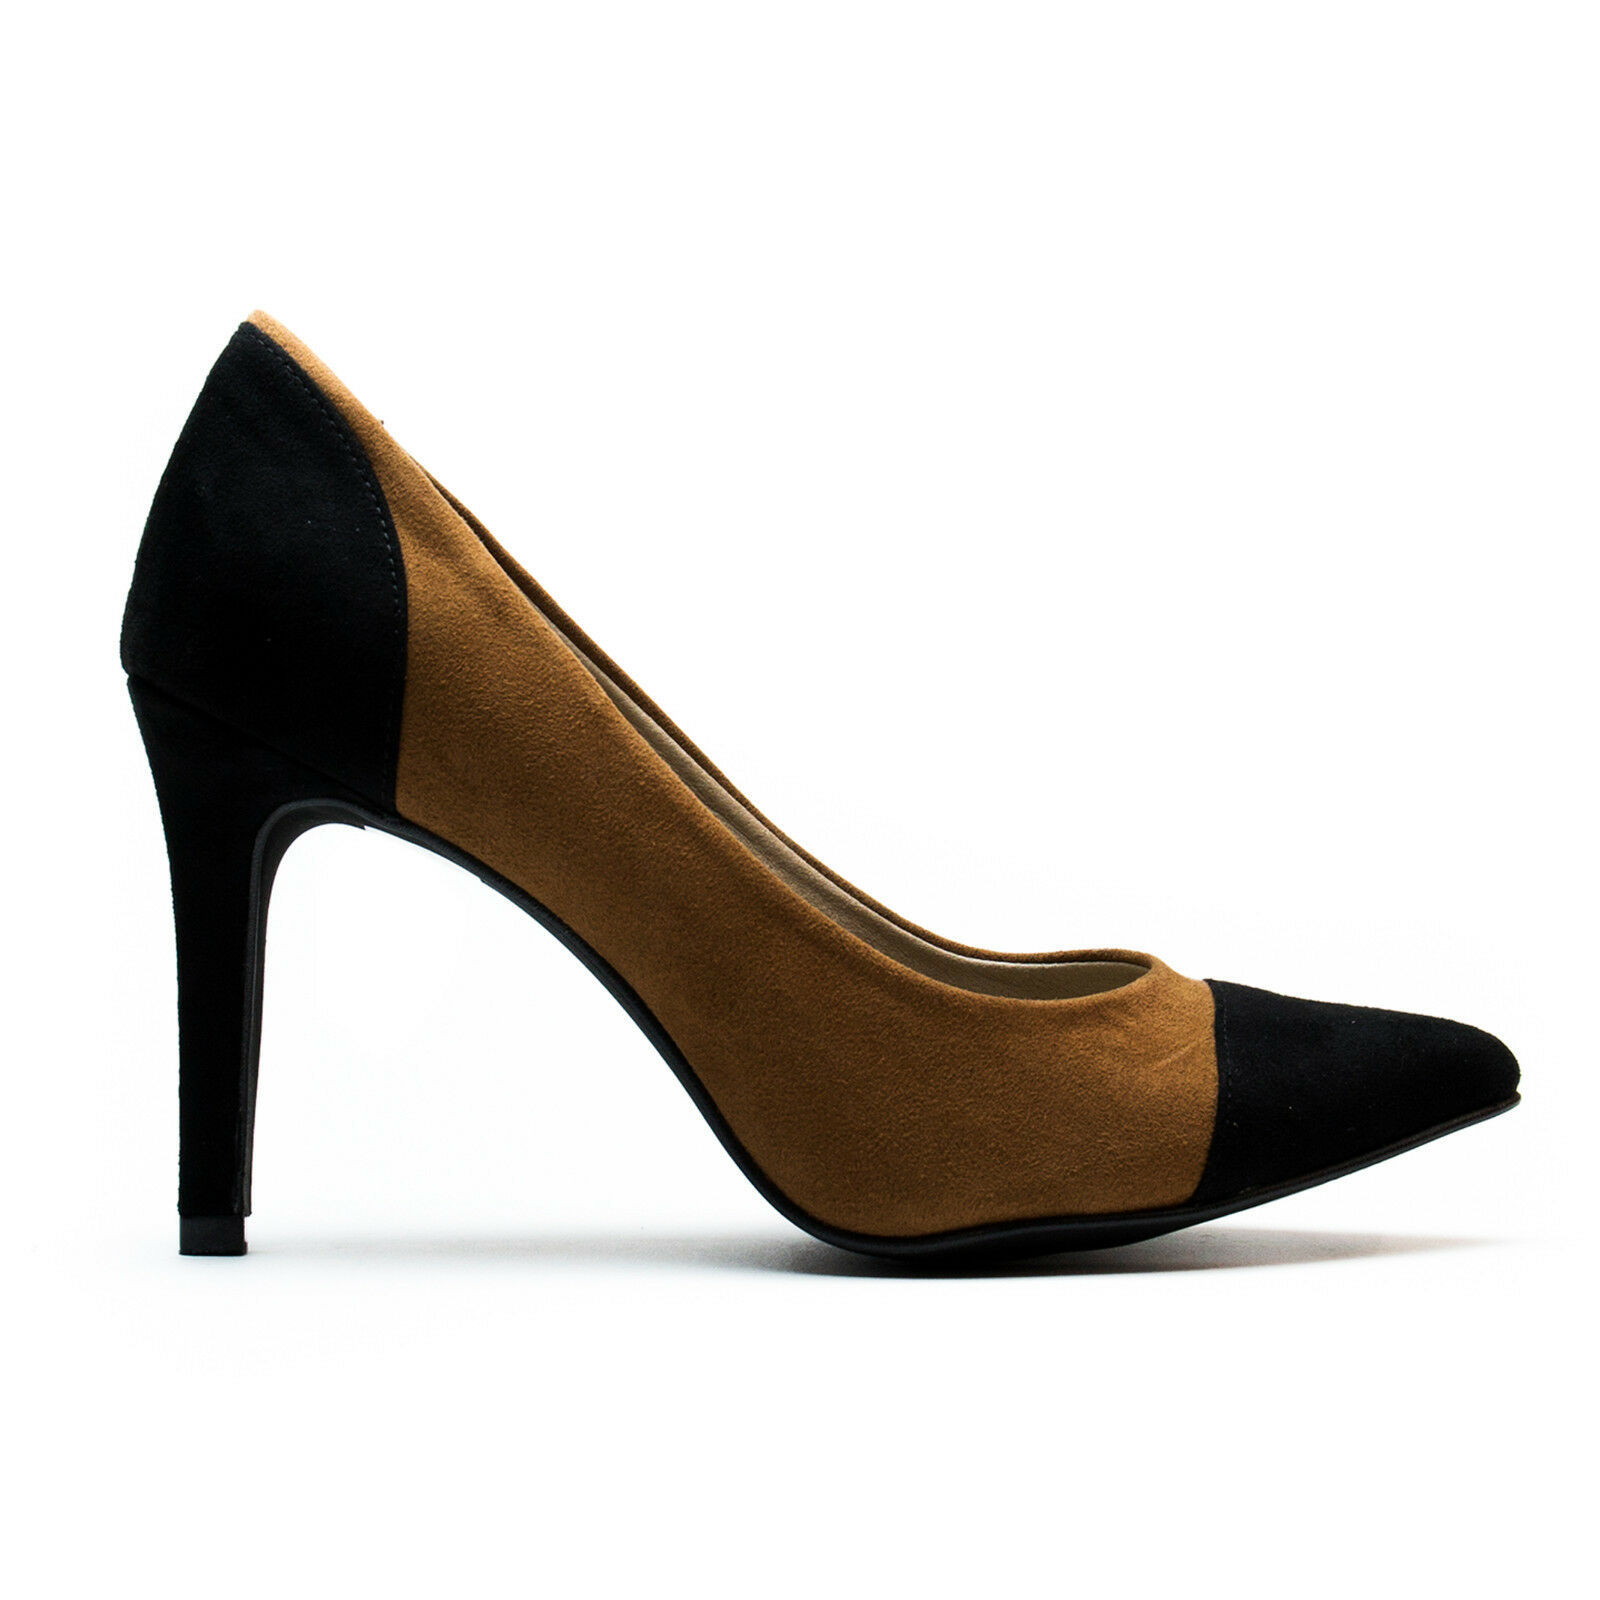 Primary image for Woman Vegan Court Shoe Pointed Pump Heel Black Brown Ecological Microsuede